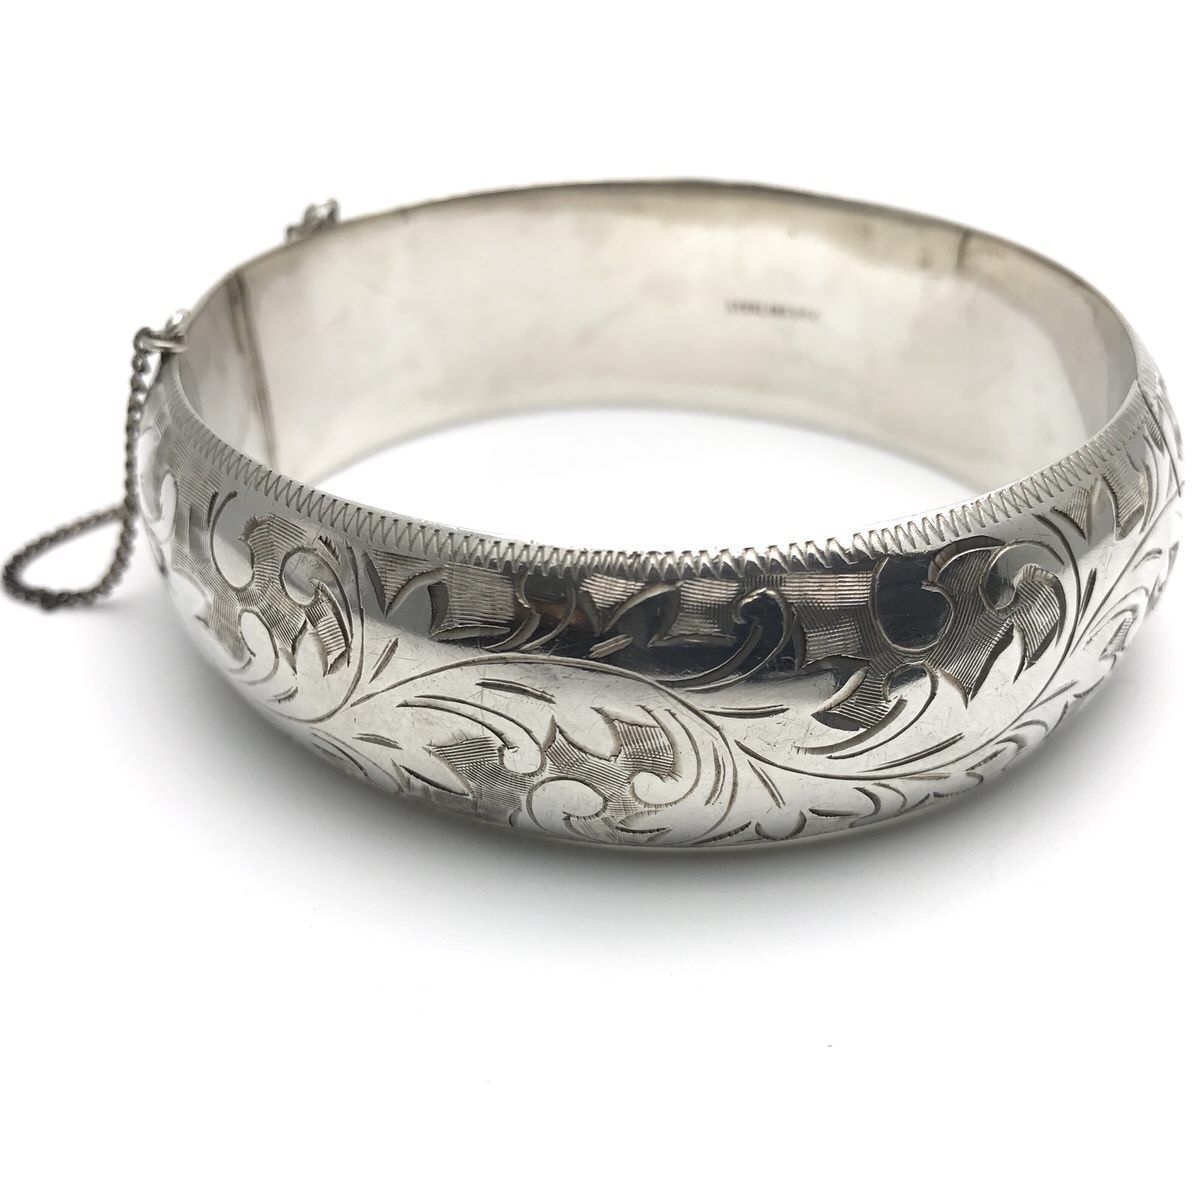 73c00763e1ee6 Exquisite Late Victorian 950 Sterling Silver Bangle Bracelet ...